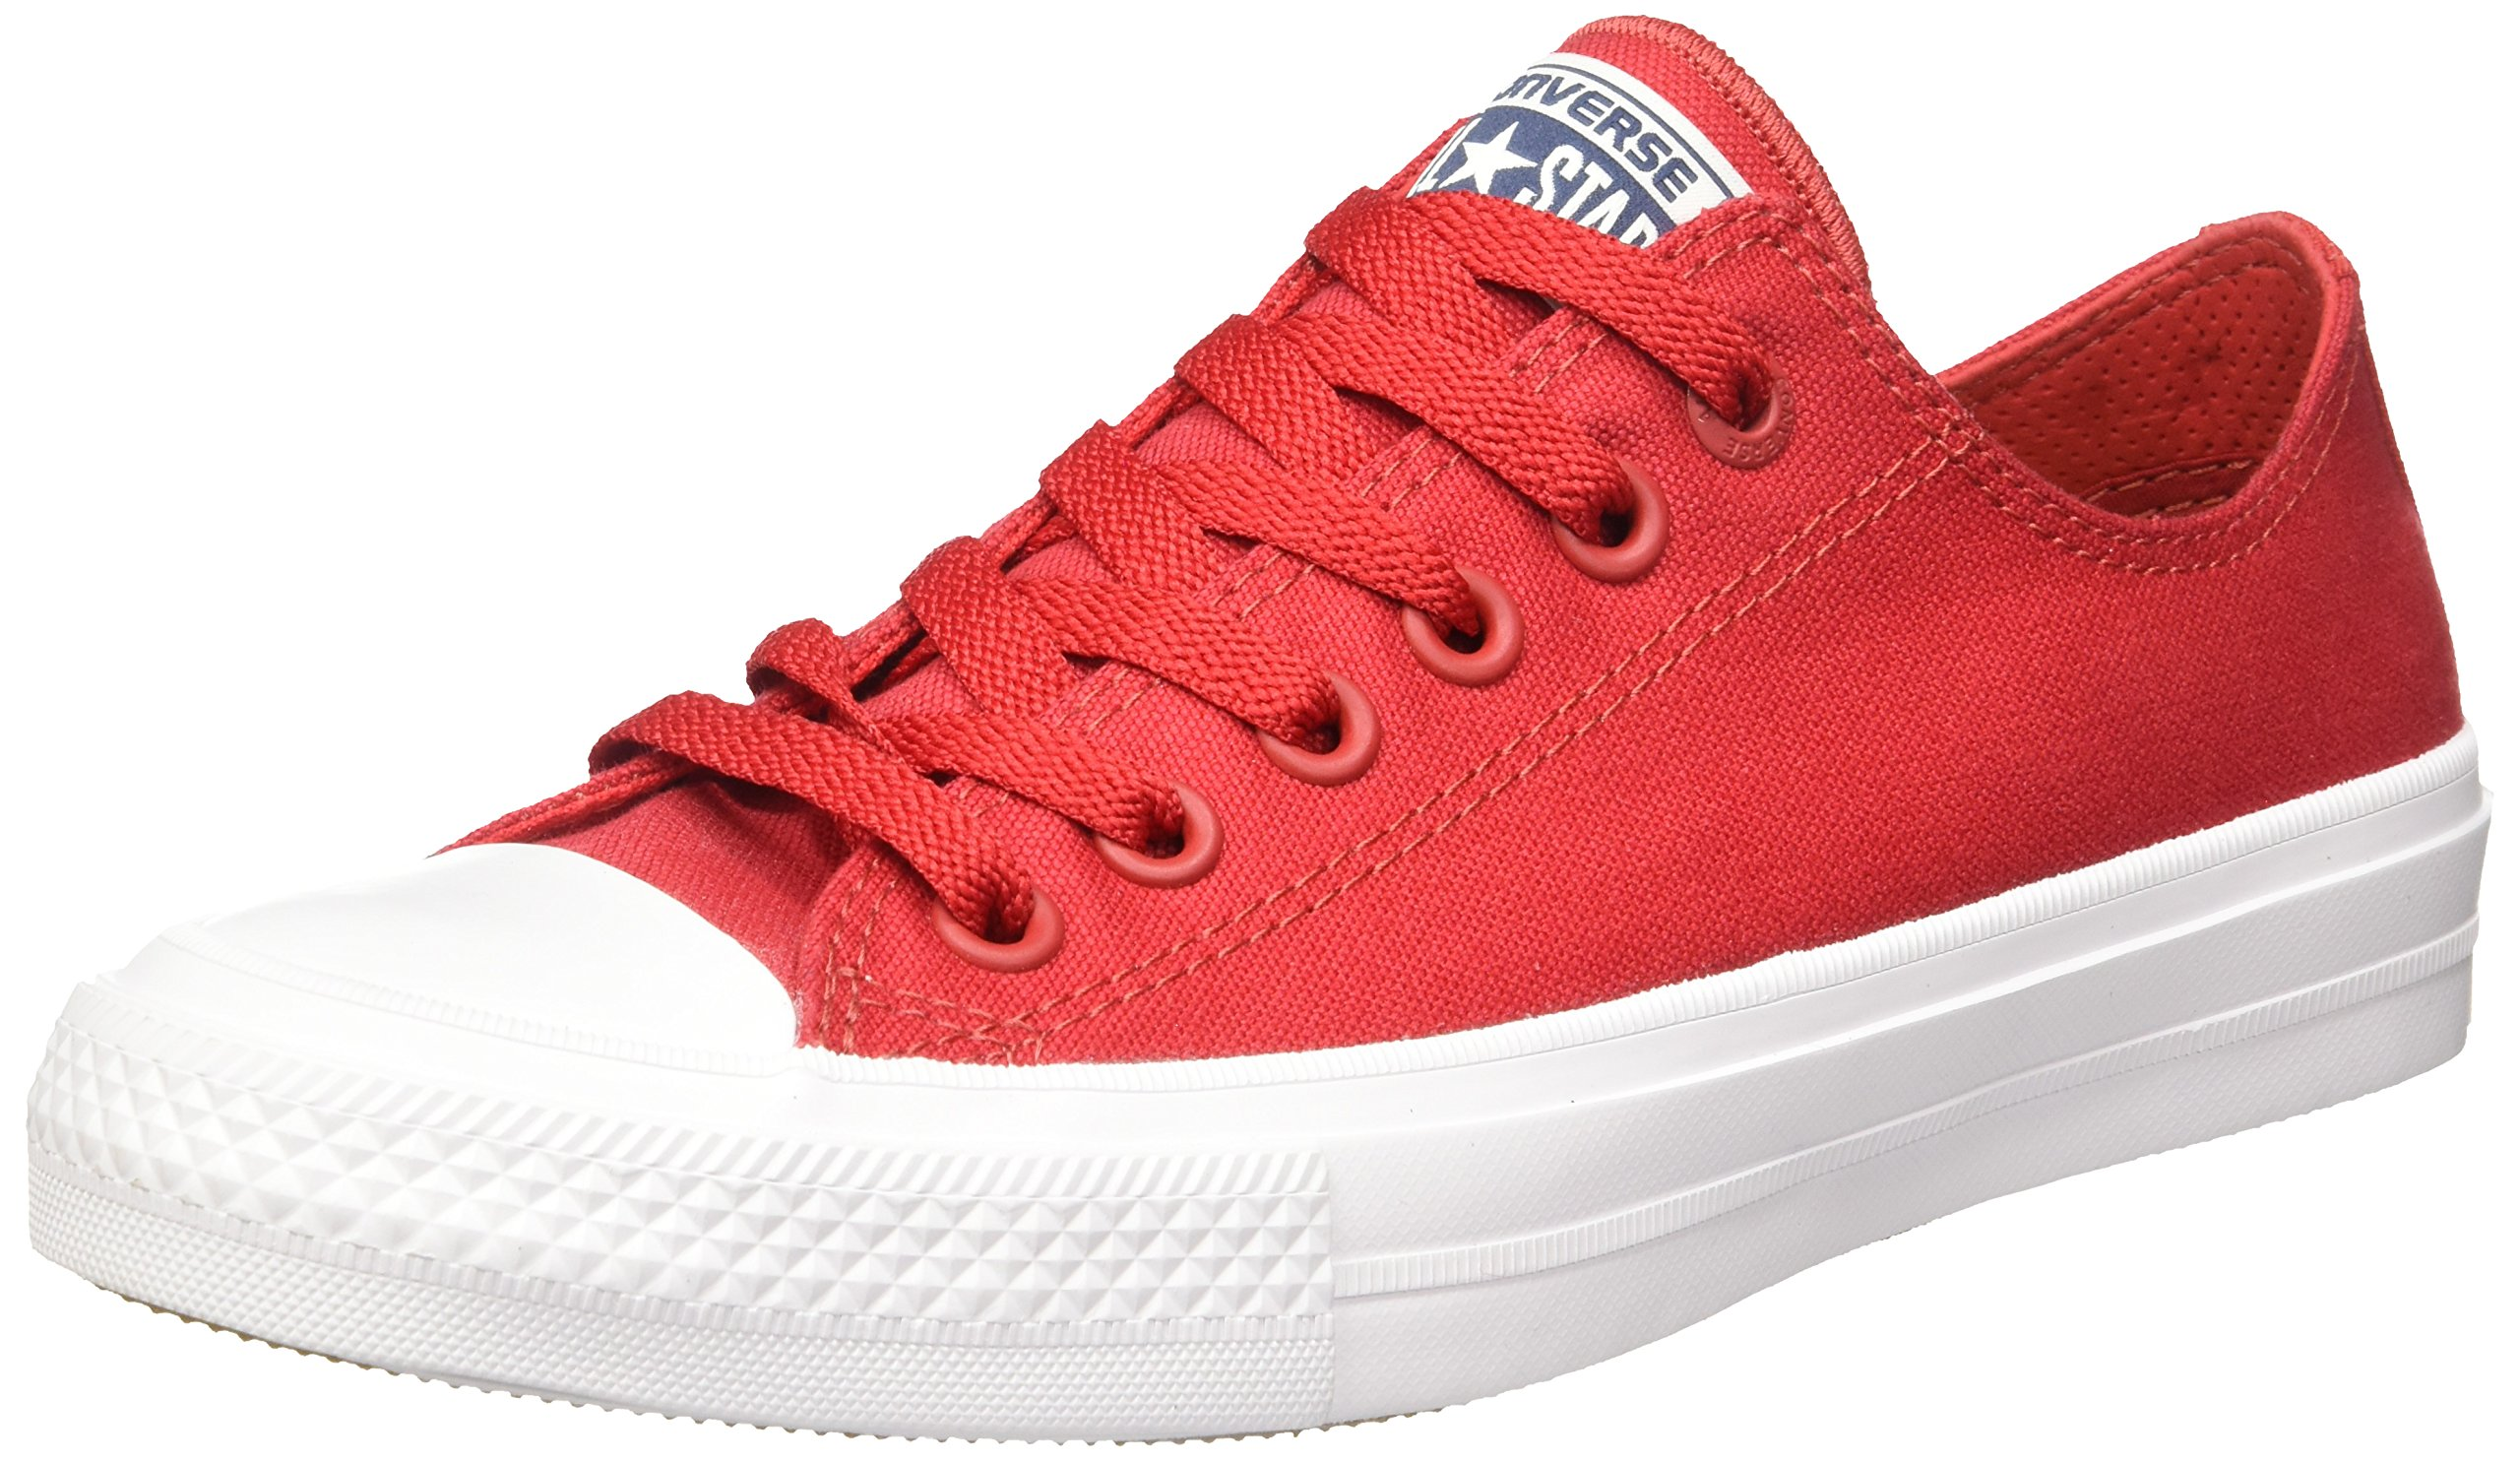 f2baa0b43e9526 Converse Chuck Taylor All Star Core Ox Salsa Red   White 12 M US